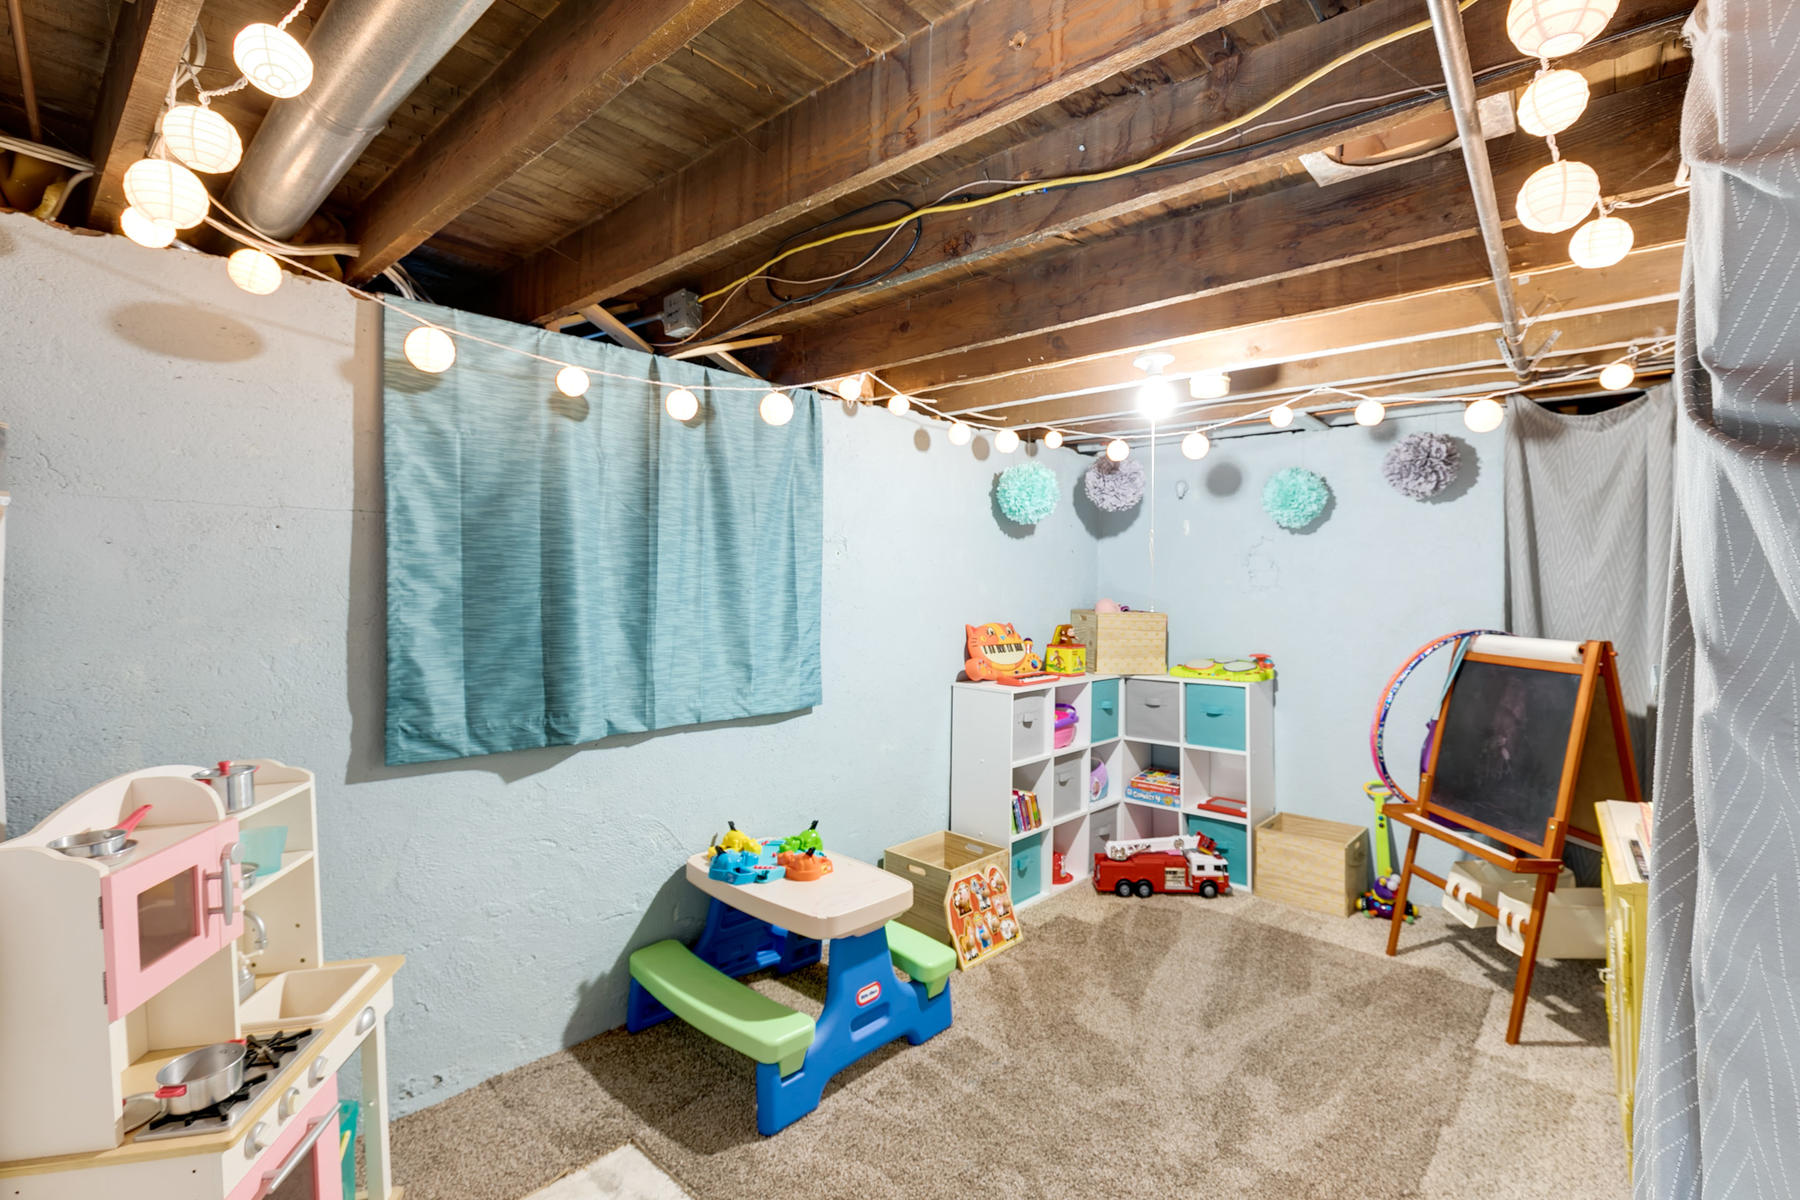 3230 S Lincoln St Englewood CO-027-033-27-MLS_Size.jpg